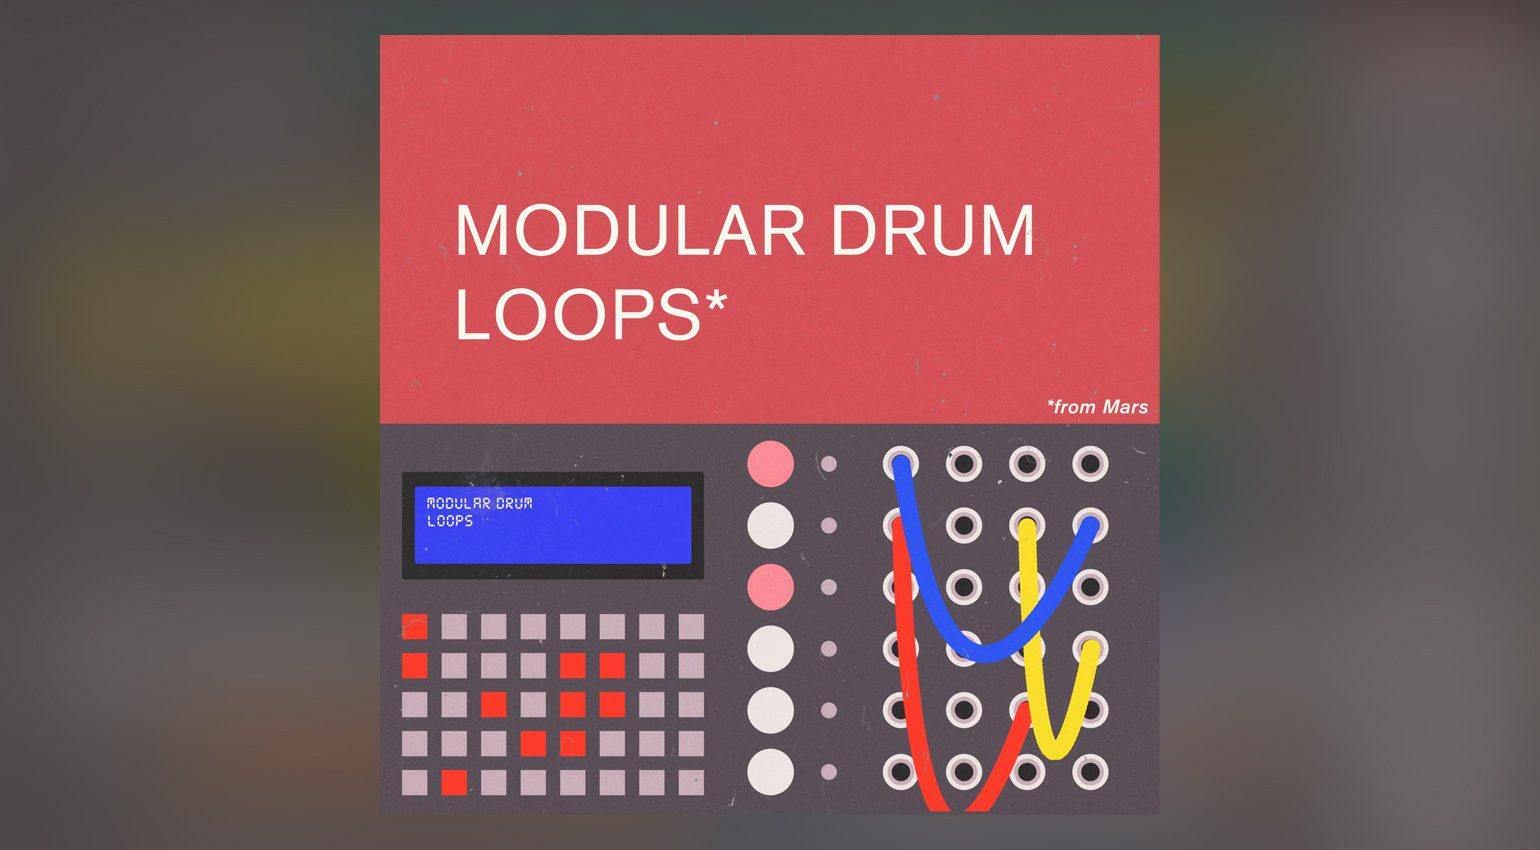 Samples From Mars – Modular Drum Loops From Mars